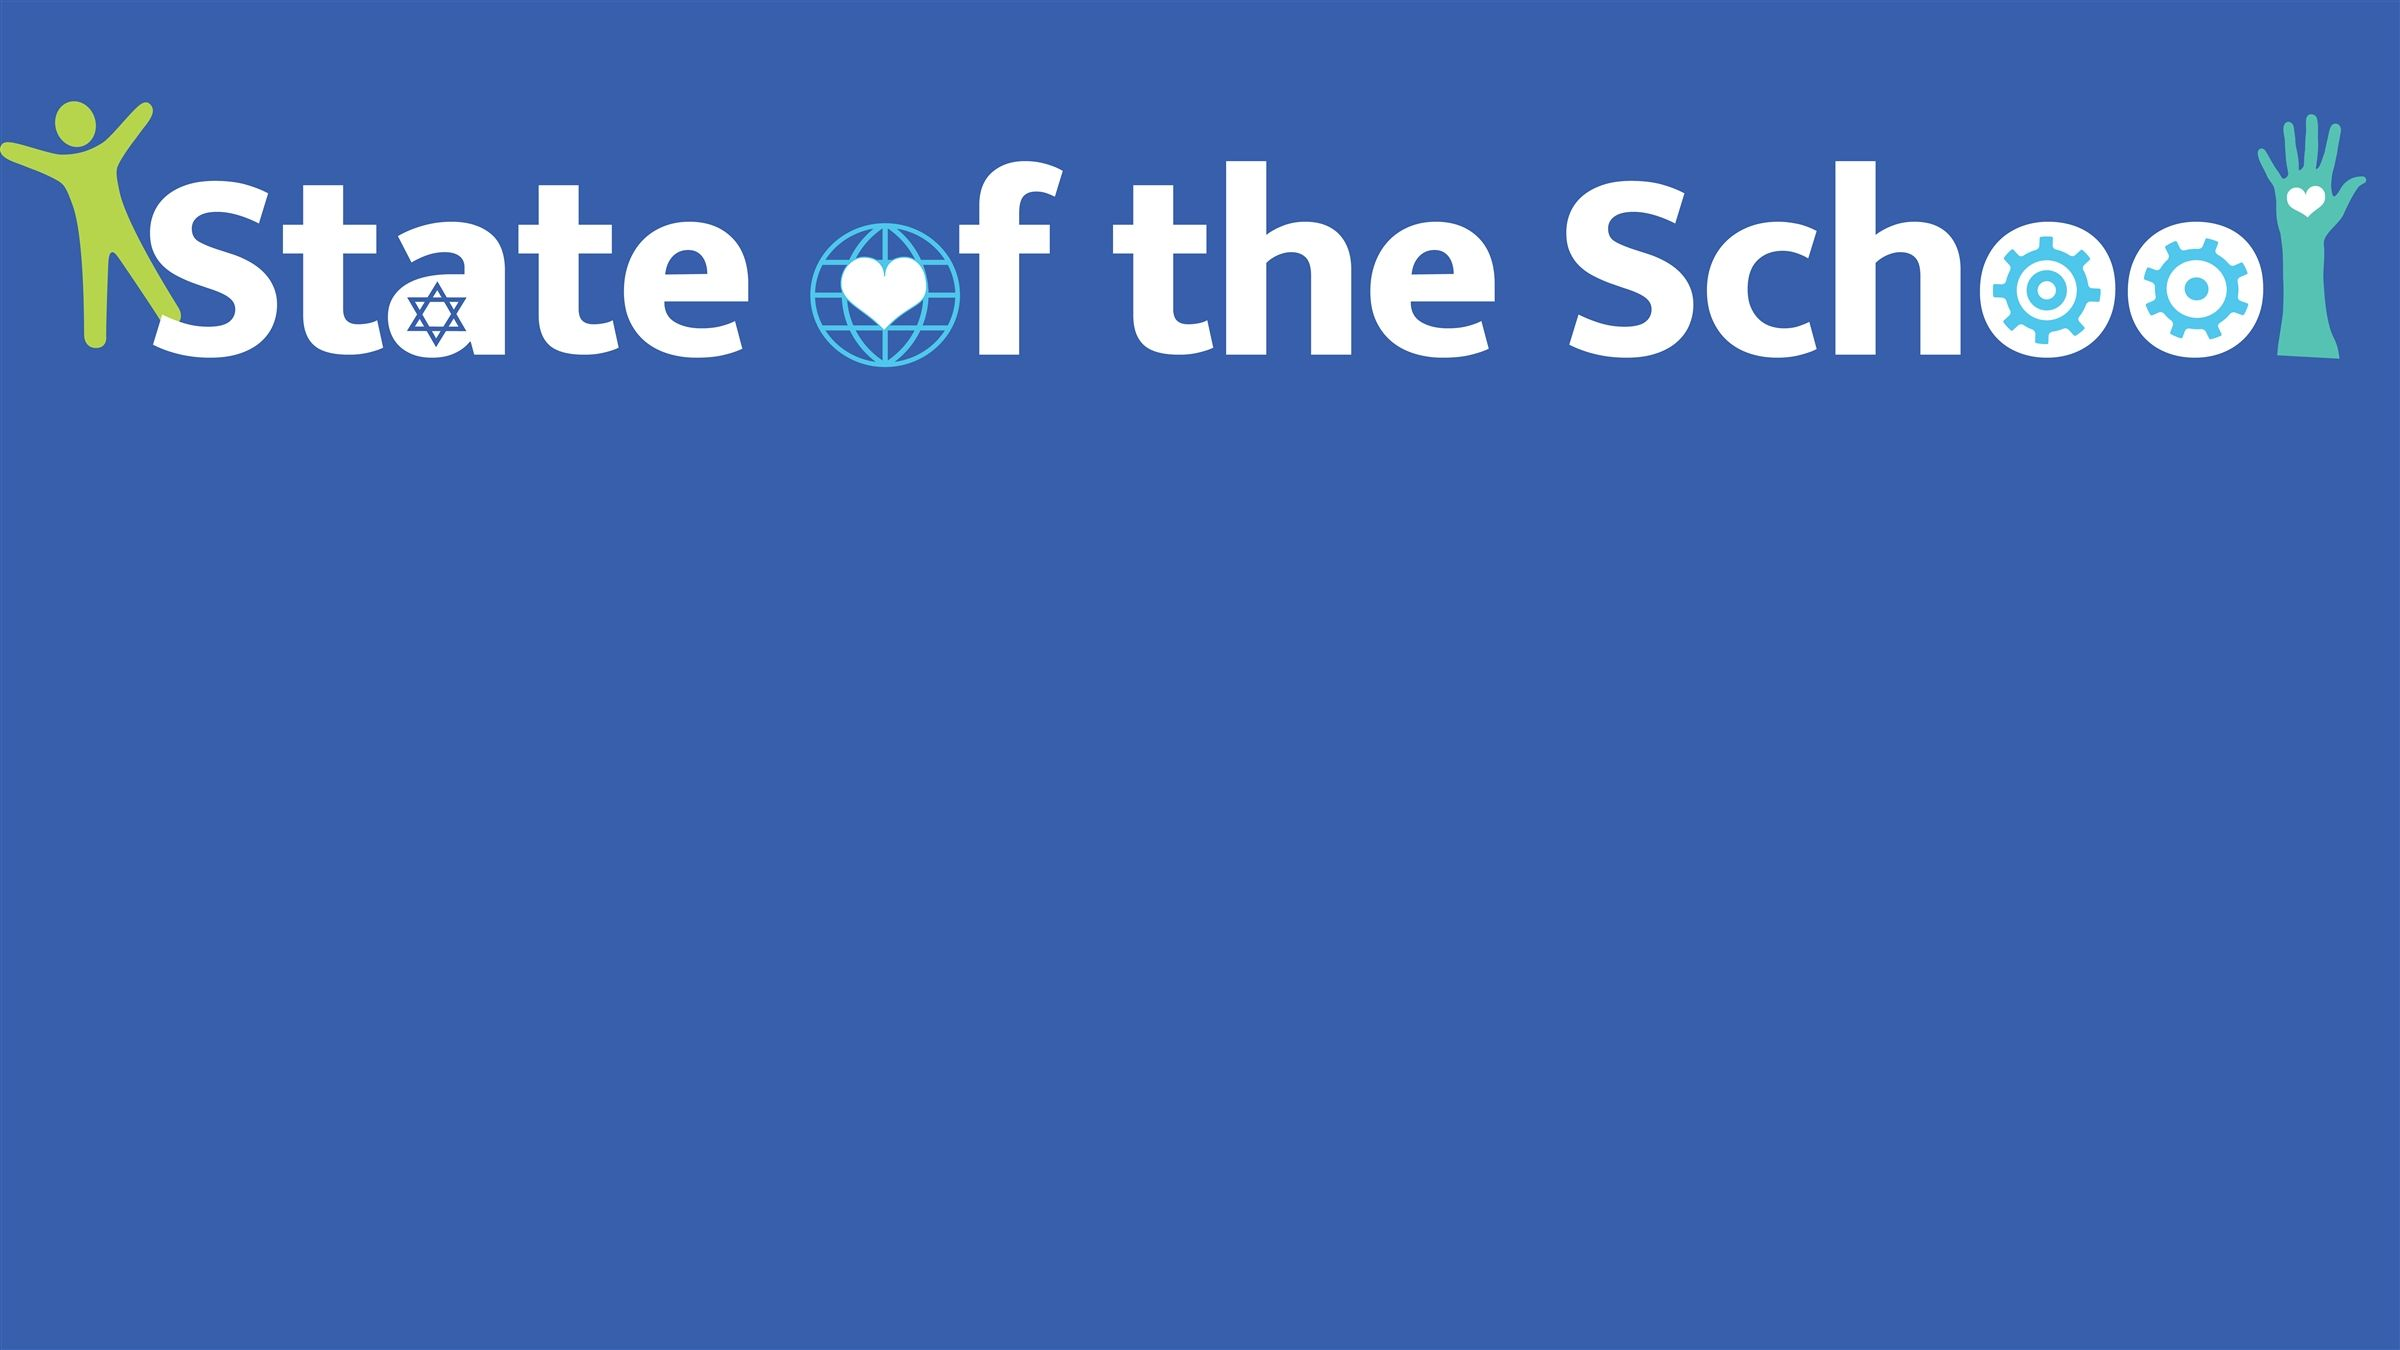 SAA_State of School_header